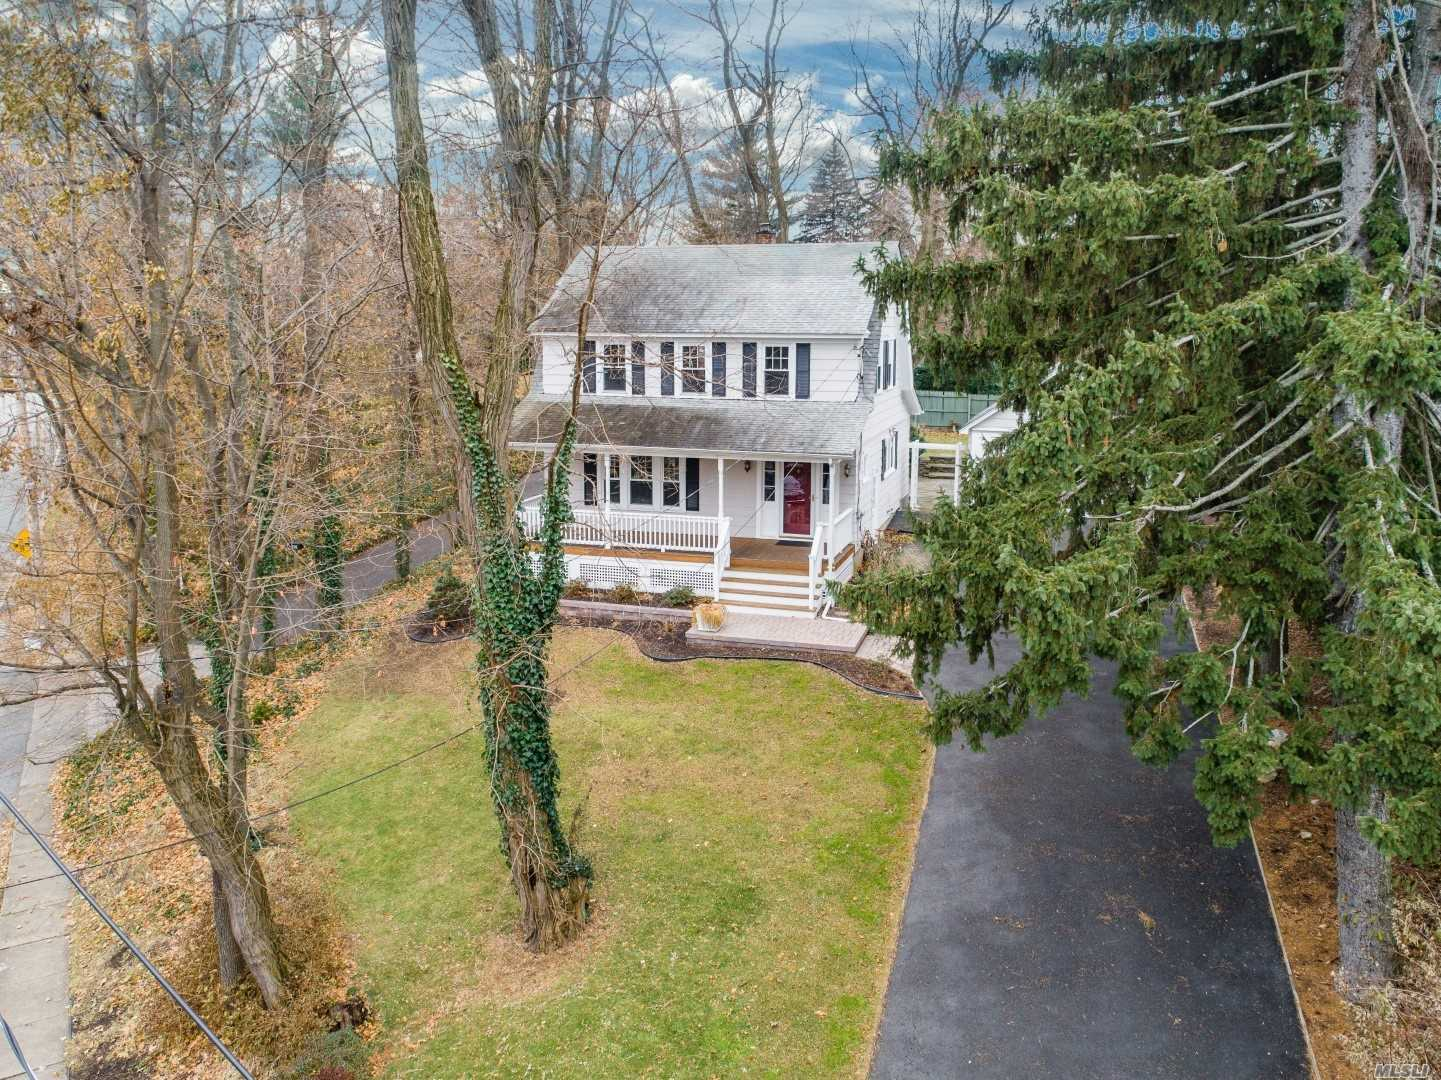 This Move-In Ready Colonial W/Old World Charm Is Fully Renovated And Ready For Its New Owner. Hardwood Floors Throughout, New Kitchen With Subway Tiles And Ss Appliances, Renovated Bathrooms, Re-Built Front Porch, Private Backyard With Patio, And Much More. A Commuter's Dream, This Home Is Conveniently Located Across From The Glen Cove Train Station As Well As Glen Cove Hospital, Nassau Country Club & Park, And Friends Academy Private School. Wont Last & Priced To Sell. Gas Line In House.